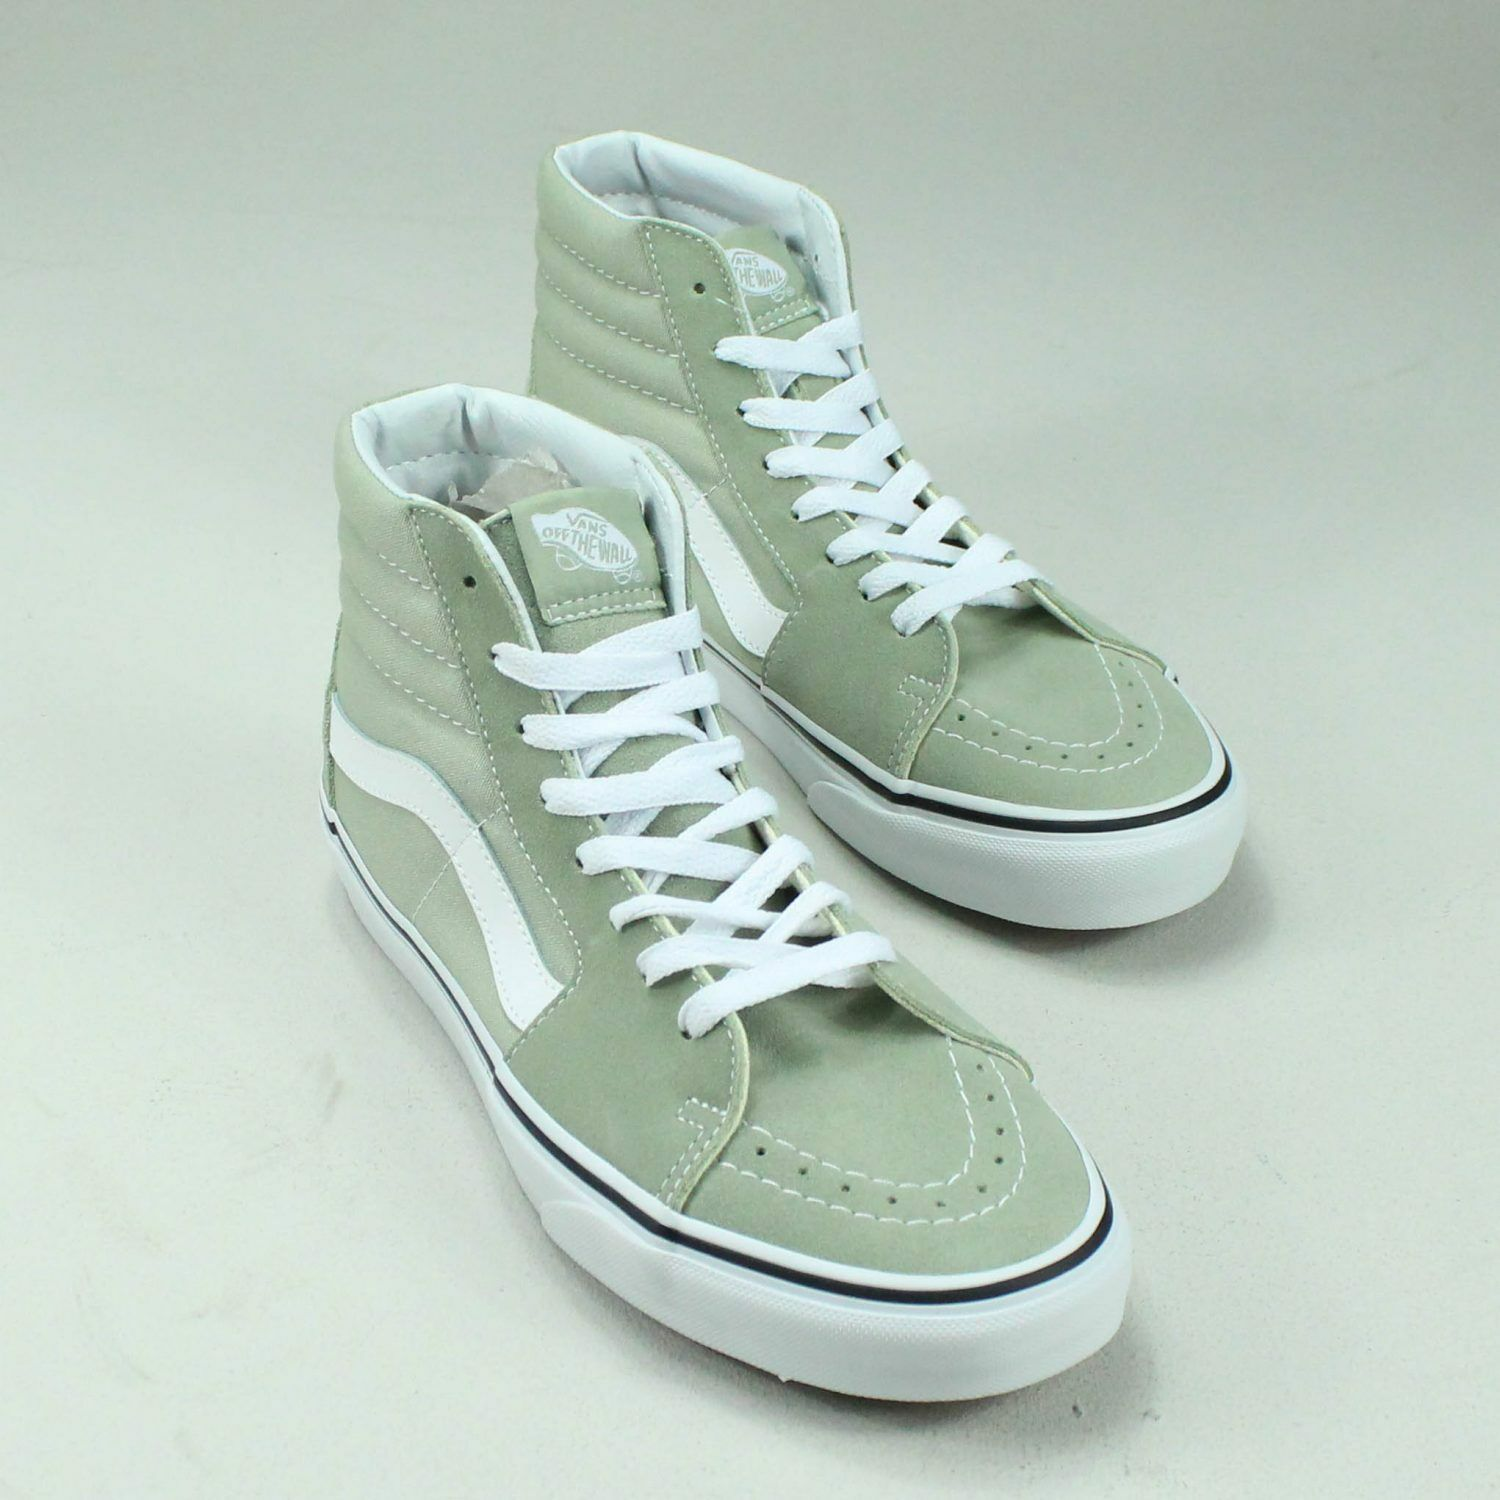 Vans Colour Schuhes Theory Sk8 Hi Trainers Schuhes Colour in Sage in UK Größe 4,5,6,7 73520b